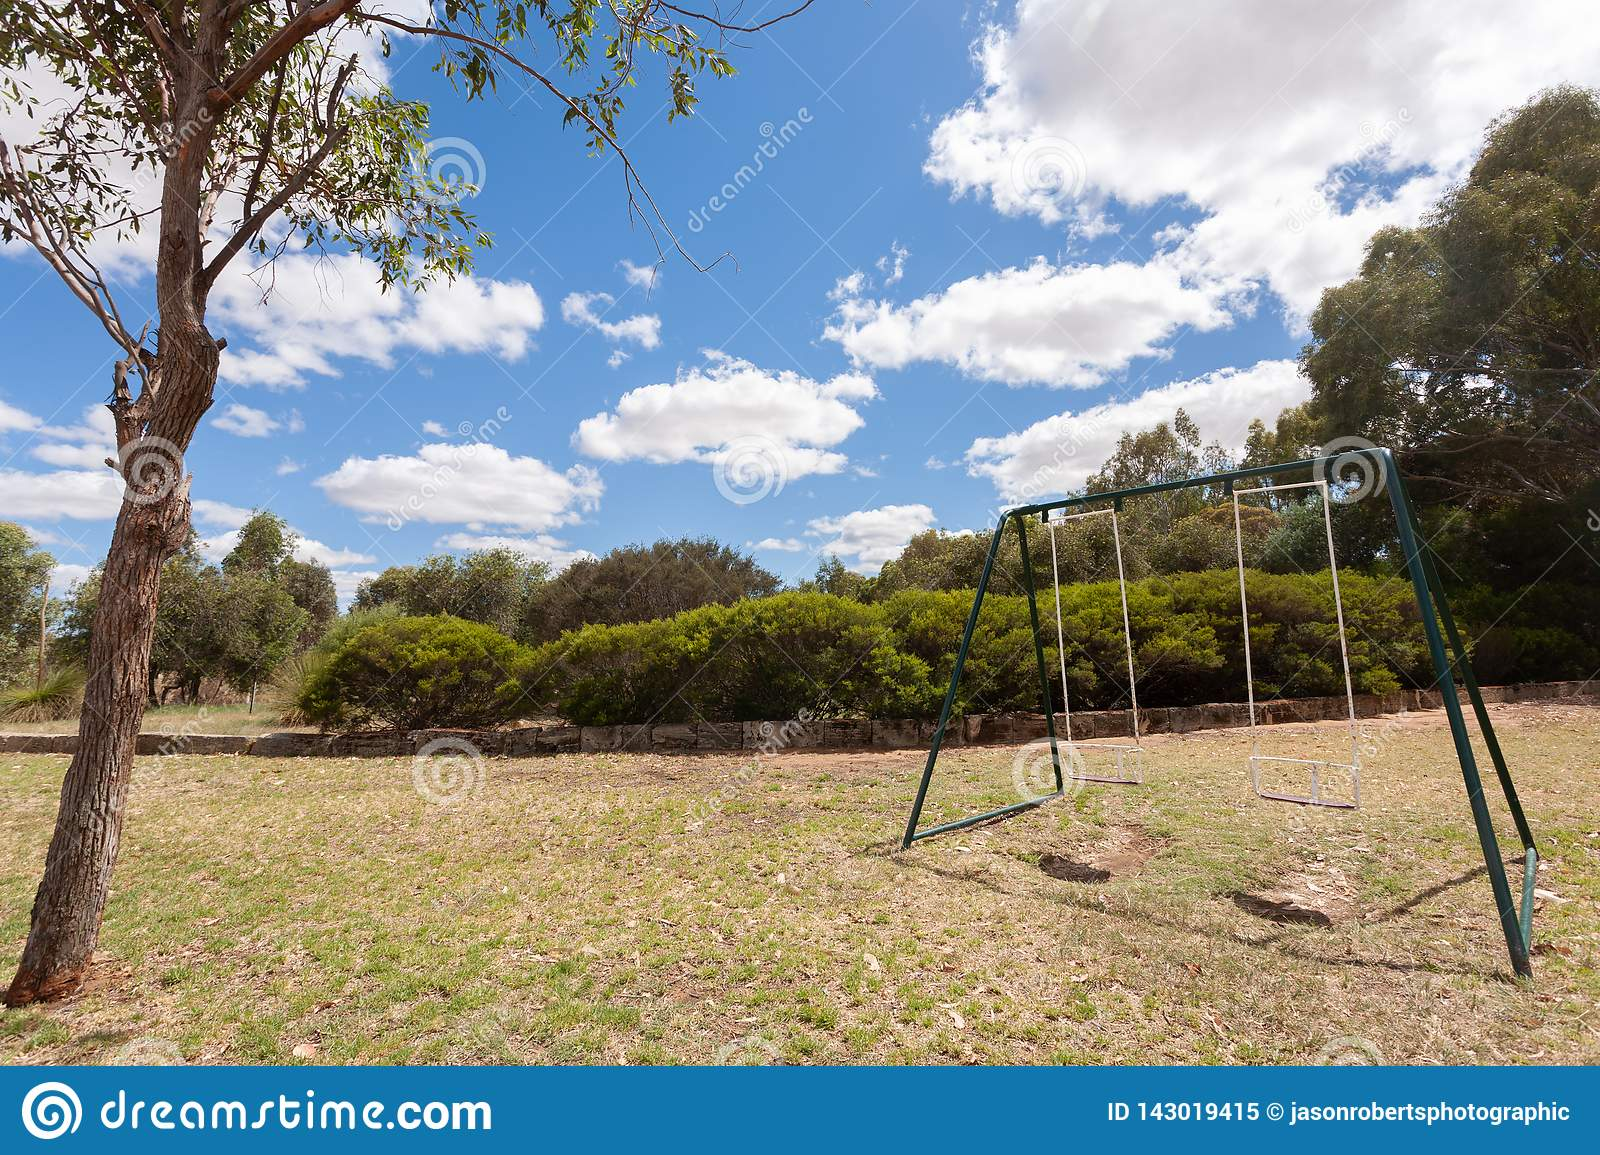 Two empty swings on grass with a small tree in the foreground under a blue sky with some white clouds